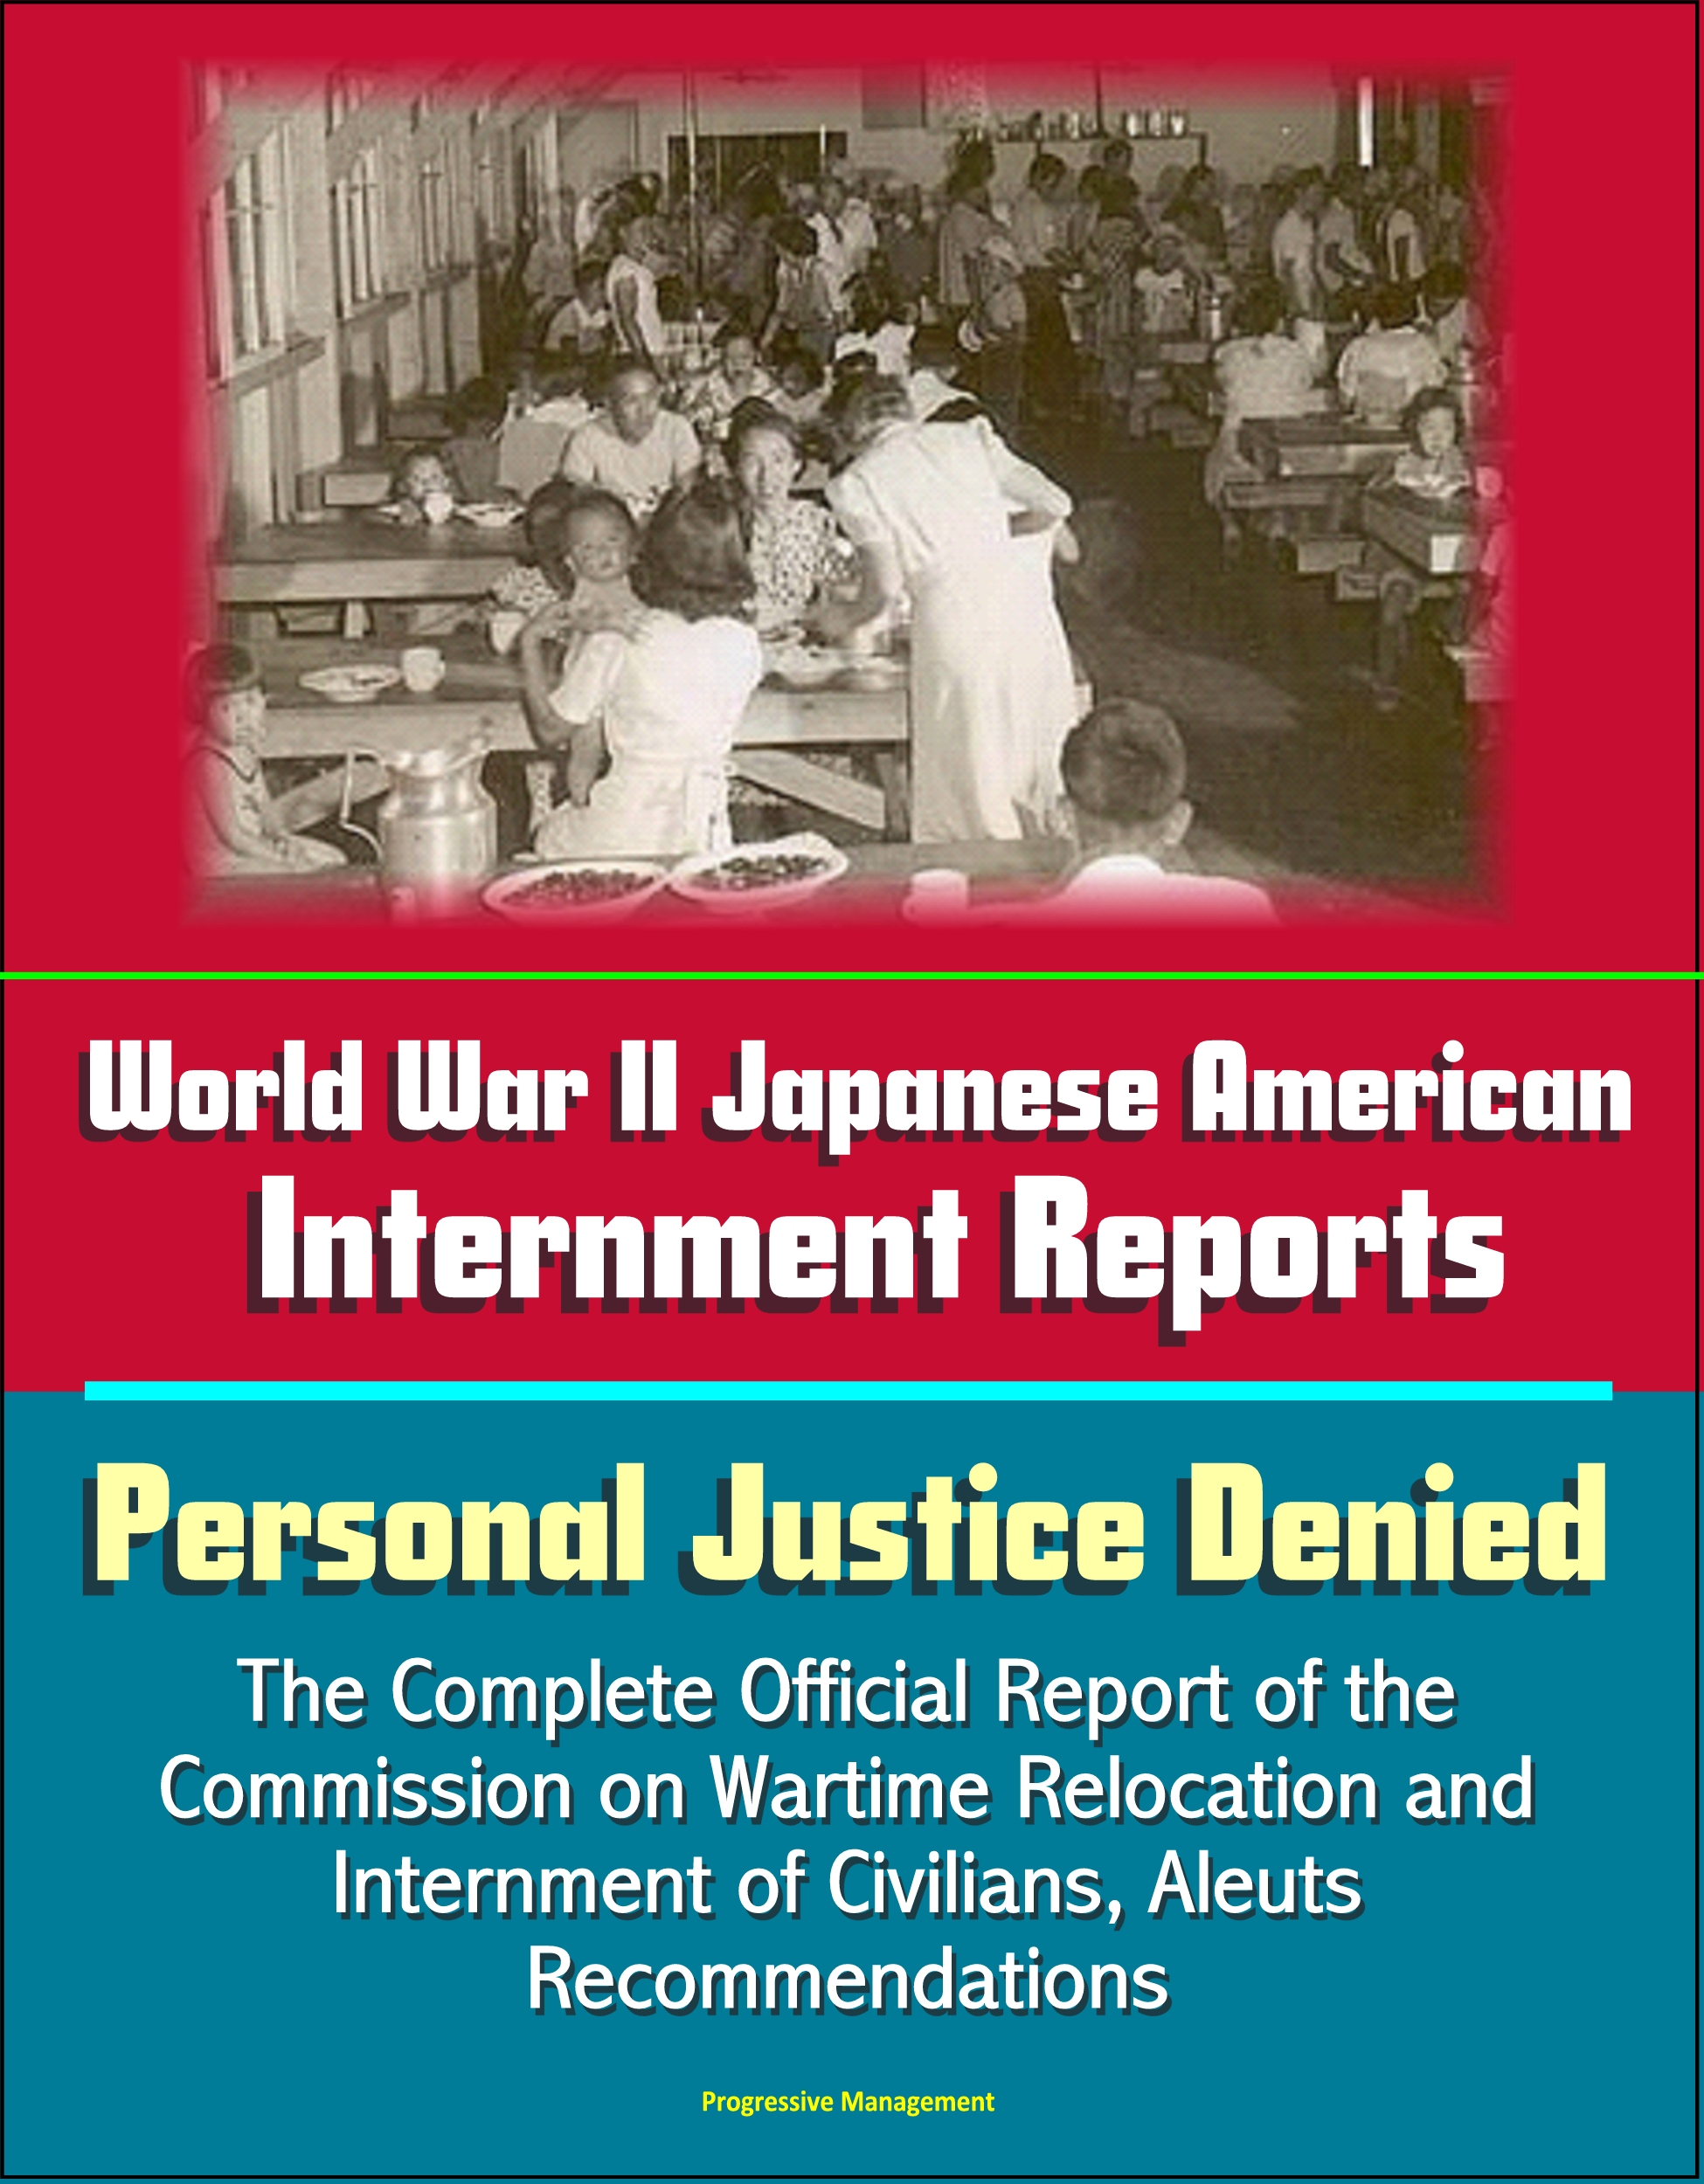 an overview of the internment of japanese americans during world war ii and its negative effects Camps during world war ii was progressive in its have negative psychological effects world war ii internment of japanese americans:.